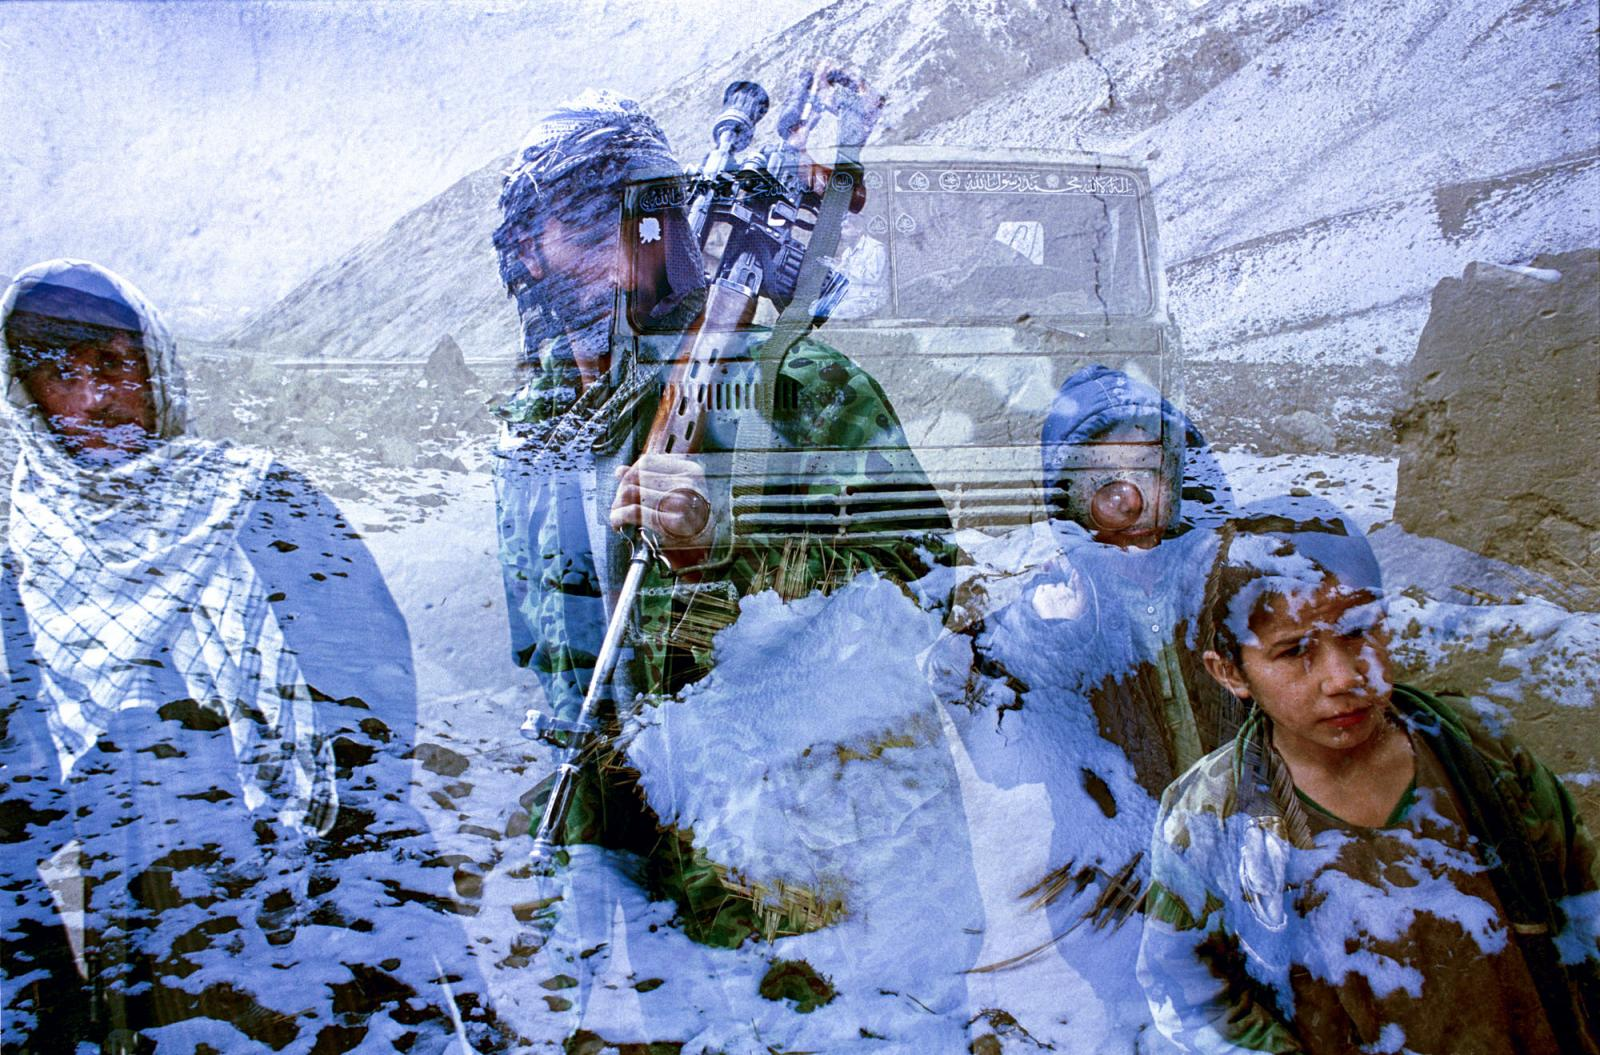 Photography image - Loading 2001_PanshirValley_DoubleExposed_Lucian-1.jpg